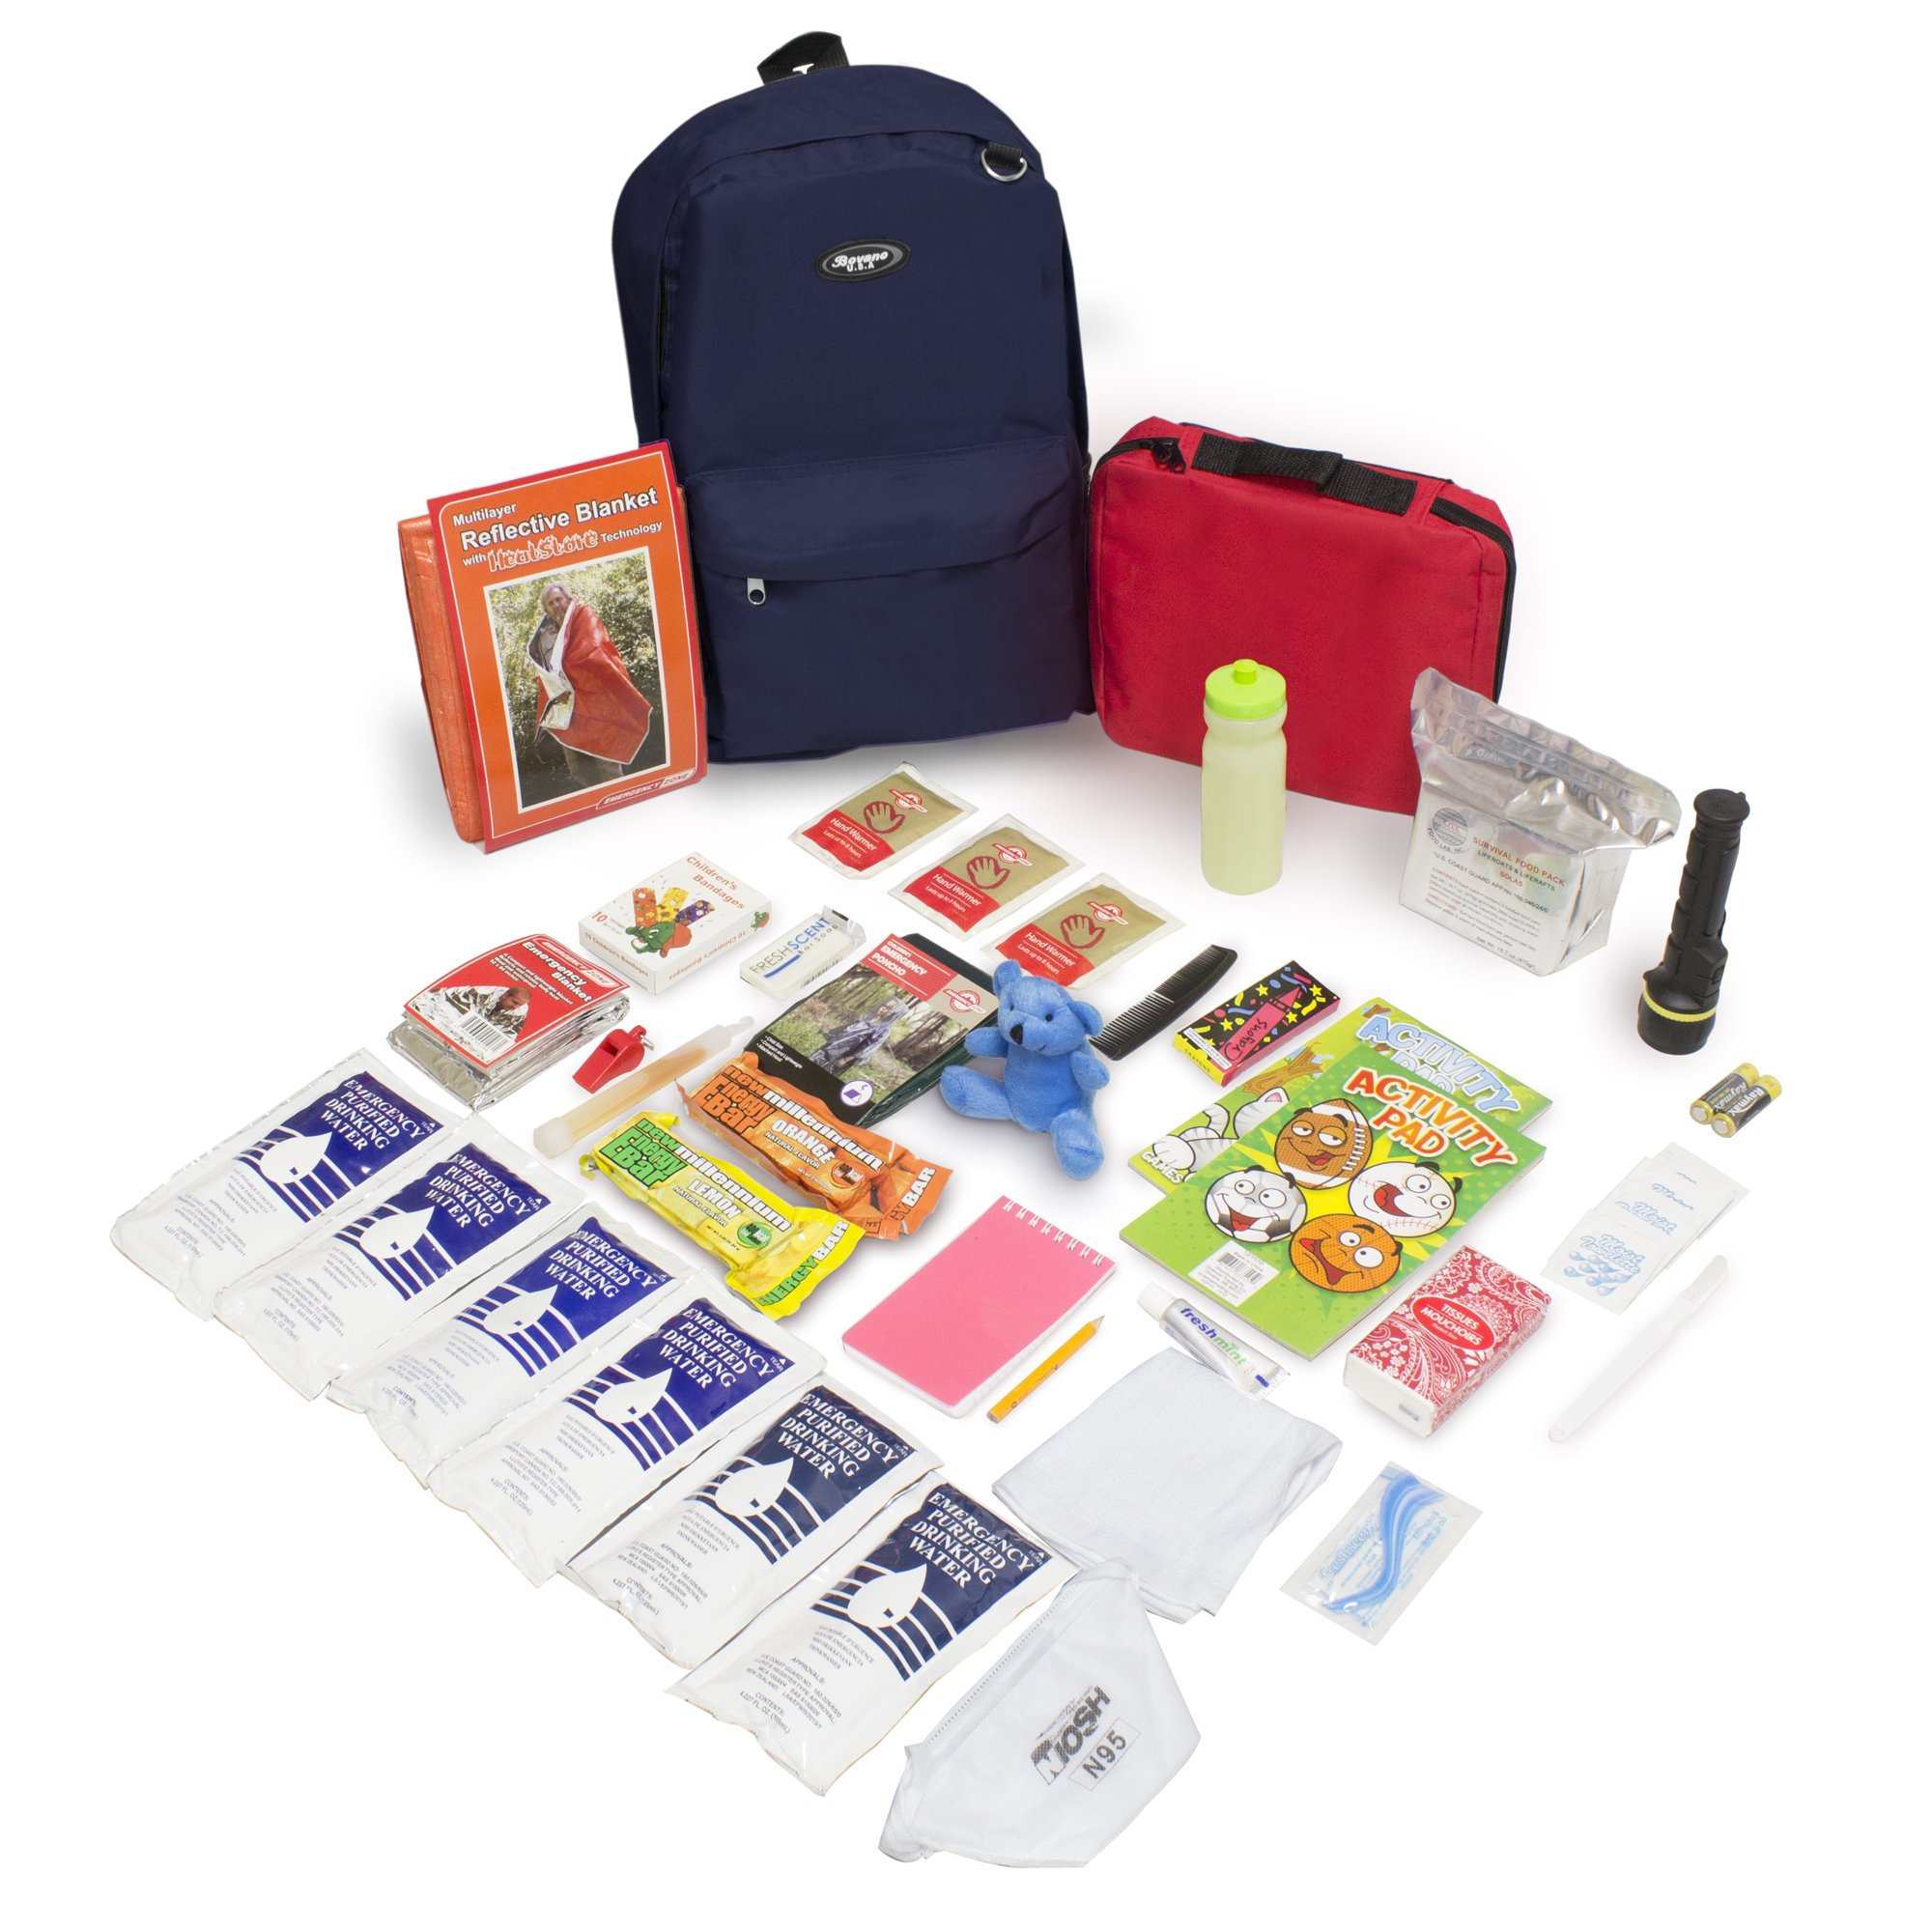 Keep-Me-Safe Children's Deluxe 72-Hr Emergency Survival Kit, Navy by Emergency Zone